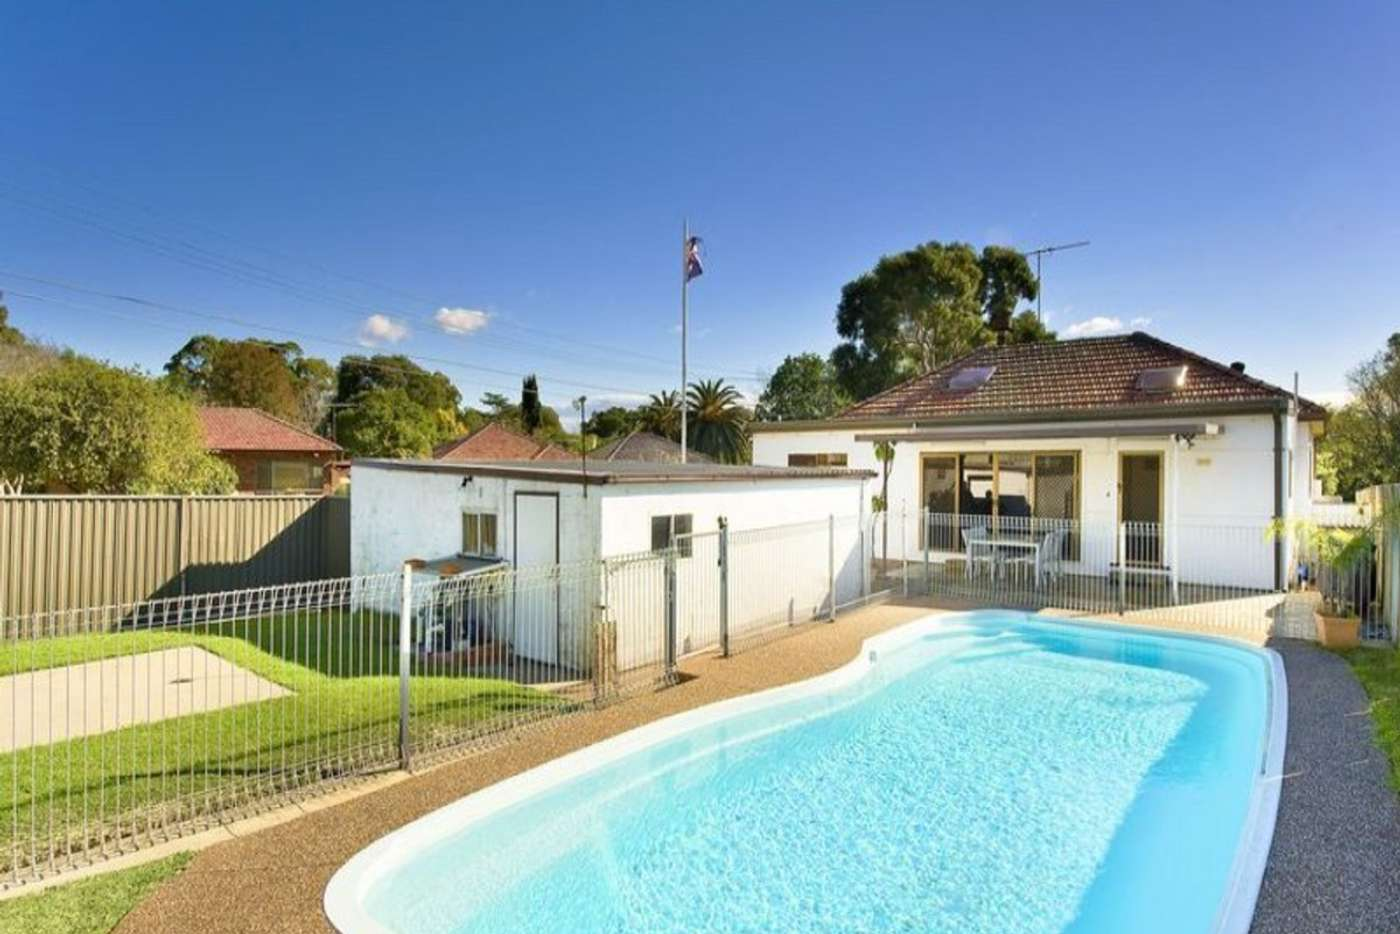 Main view of Homely house listing, 1 Deakin Street, Concord NSW 2137